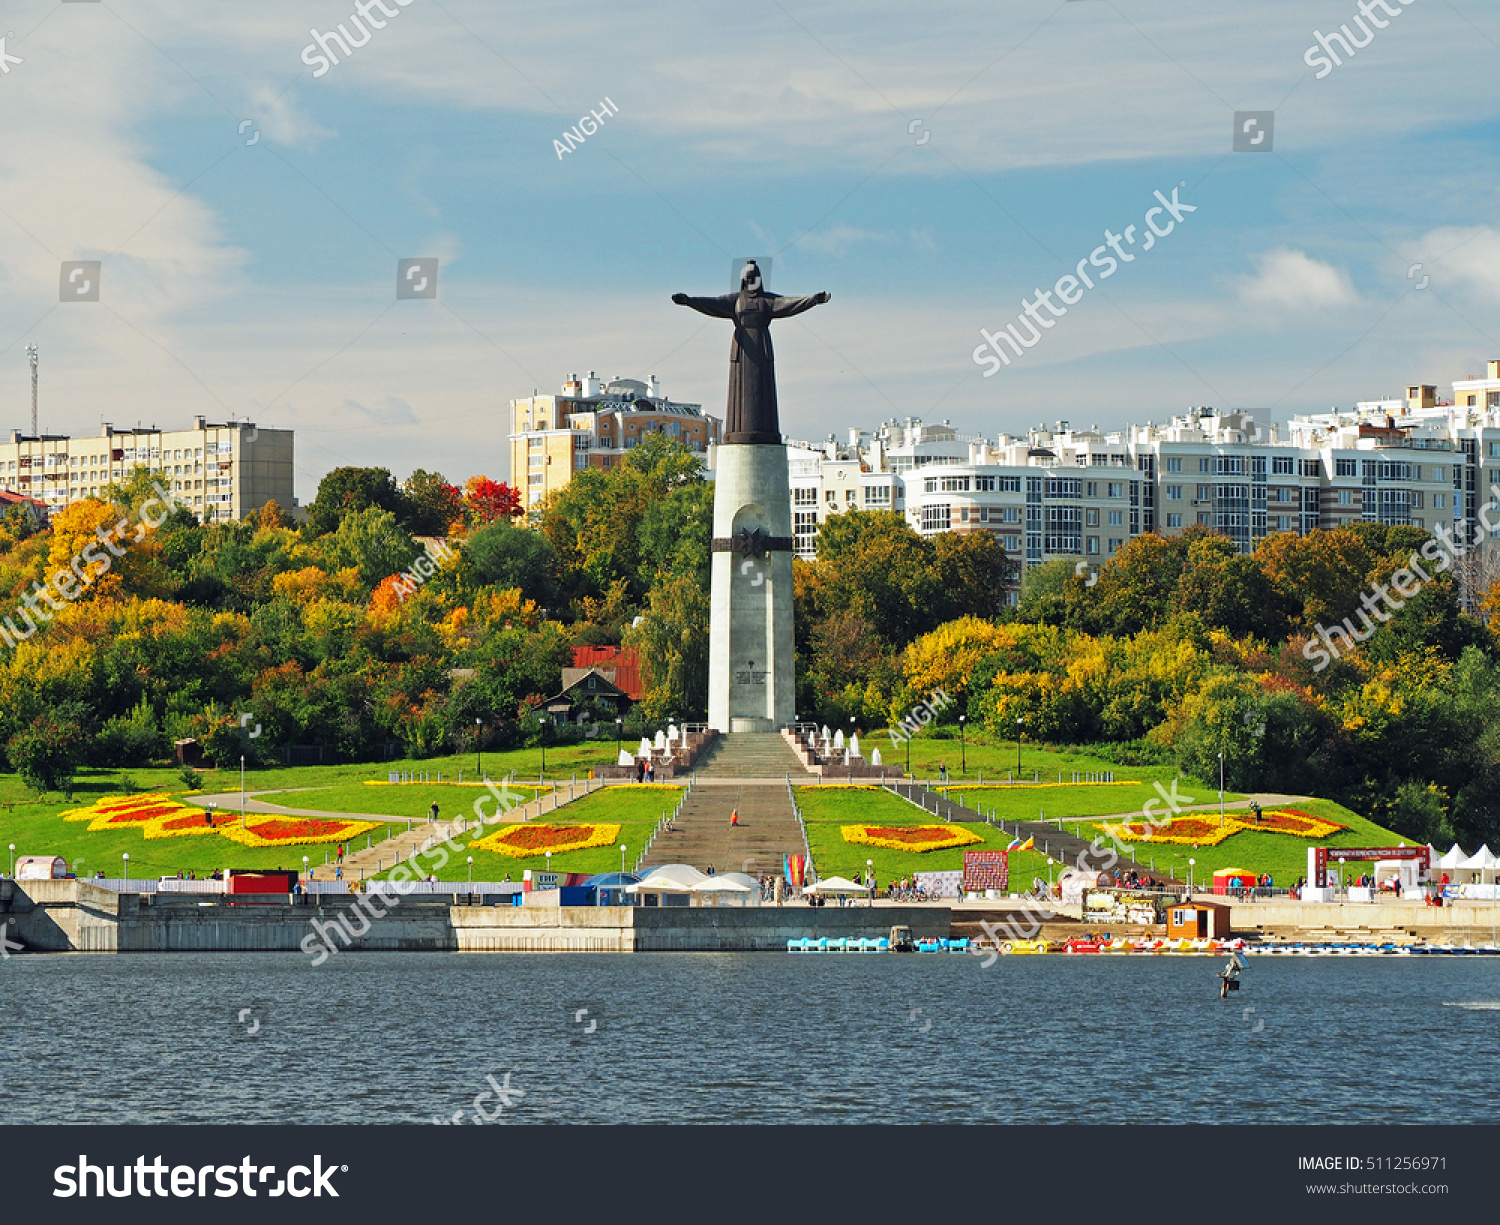 The earth is square, the Chuvash people live in the center, the end of the world will come when the end of the earth reaches Chuvashia